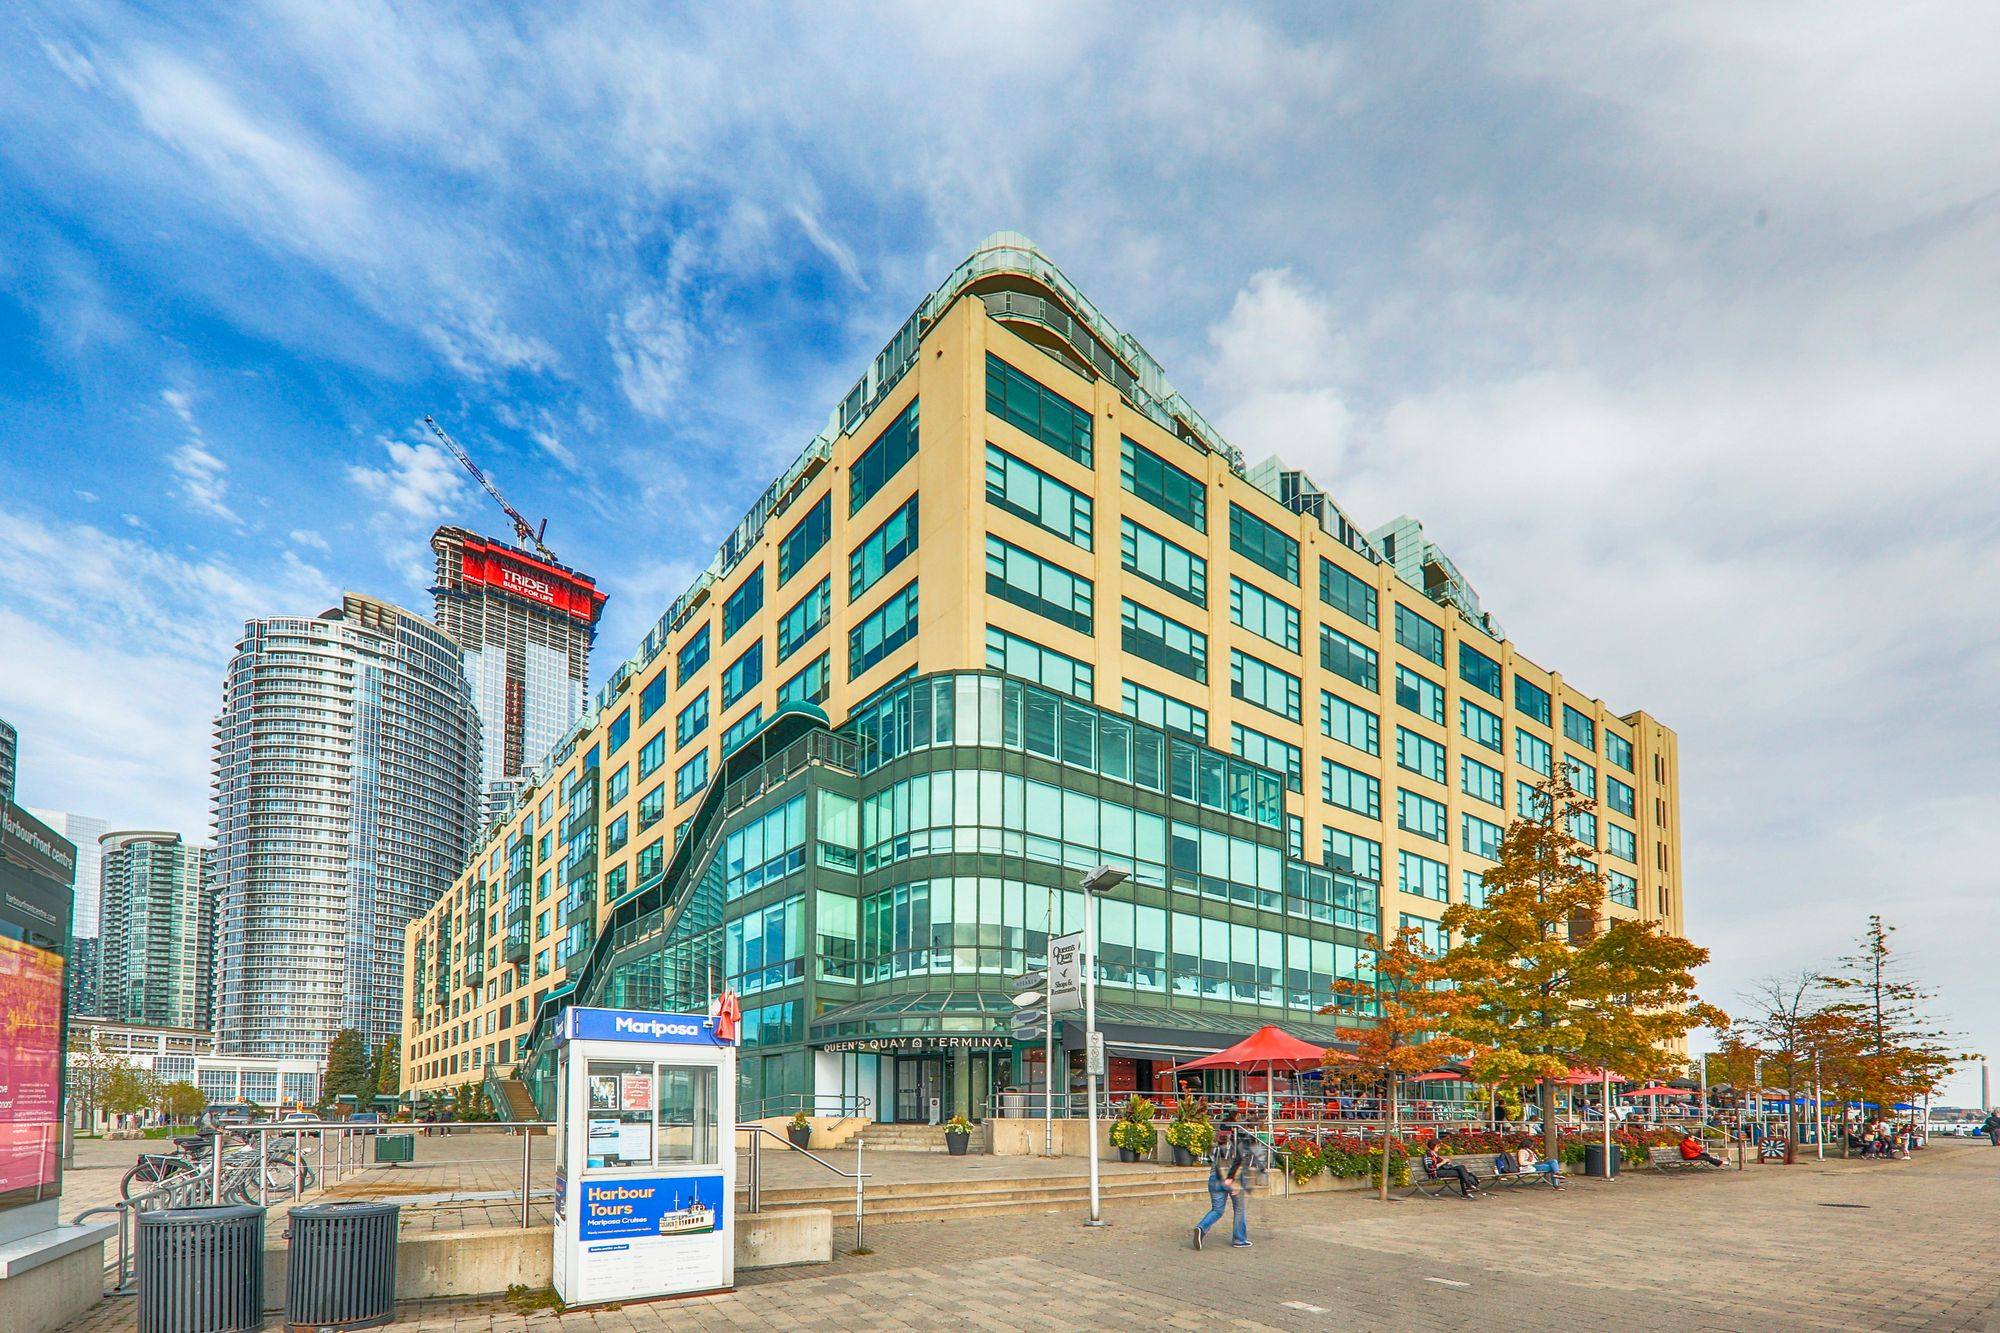 Queens Quay Terminal at 211 Queens Quay W. This condo is located in  Downtown, Toronto - image #2 of 4 by Strata.ca